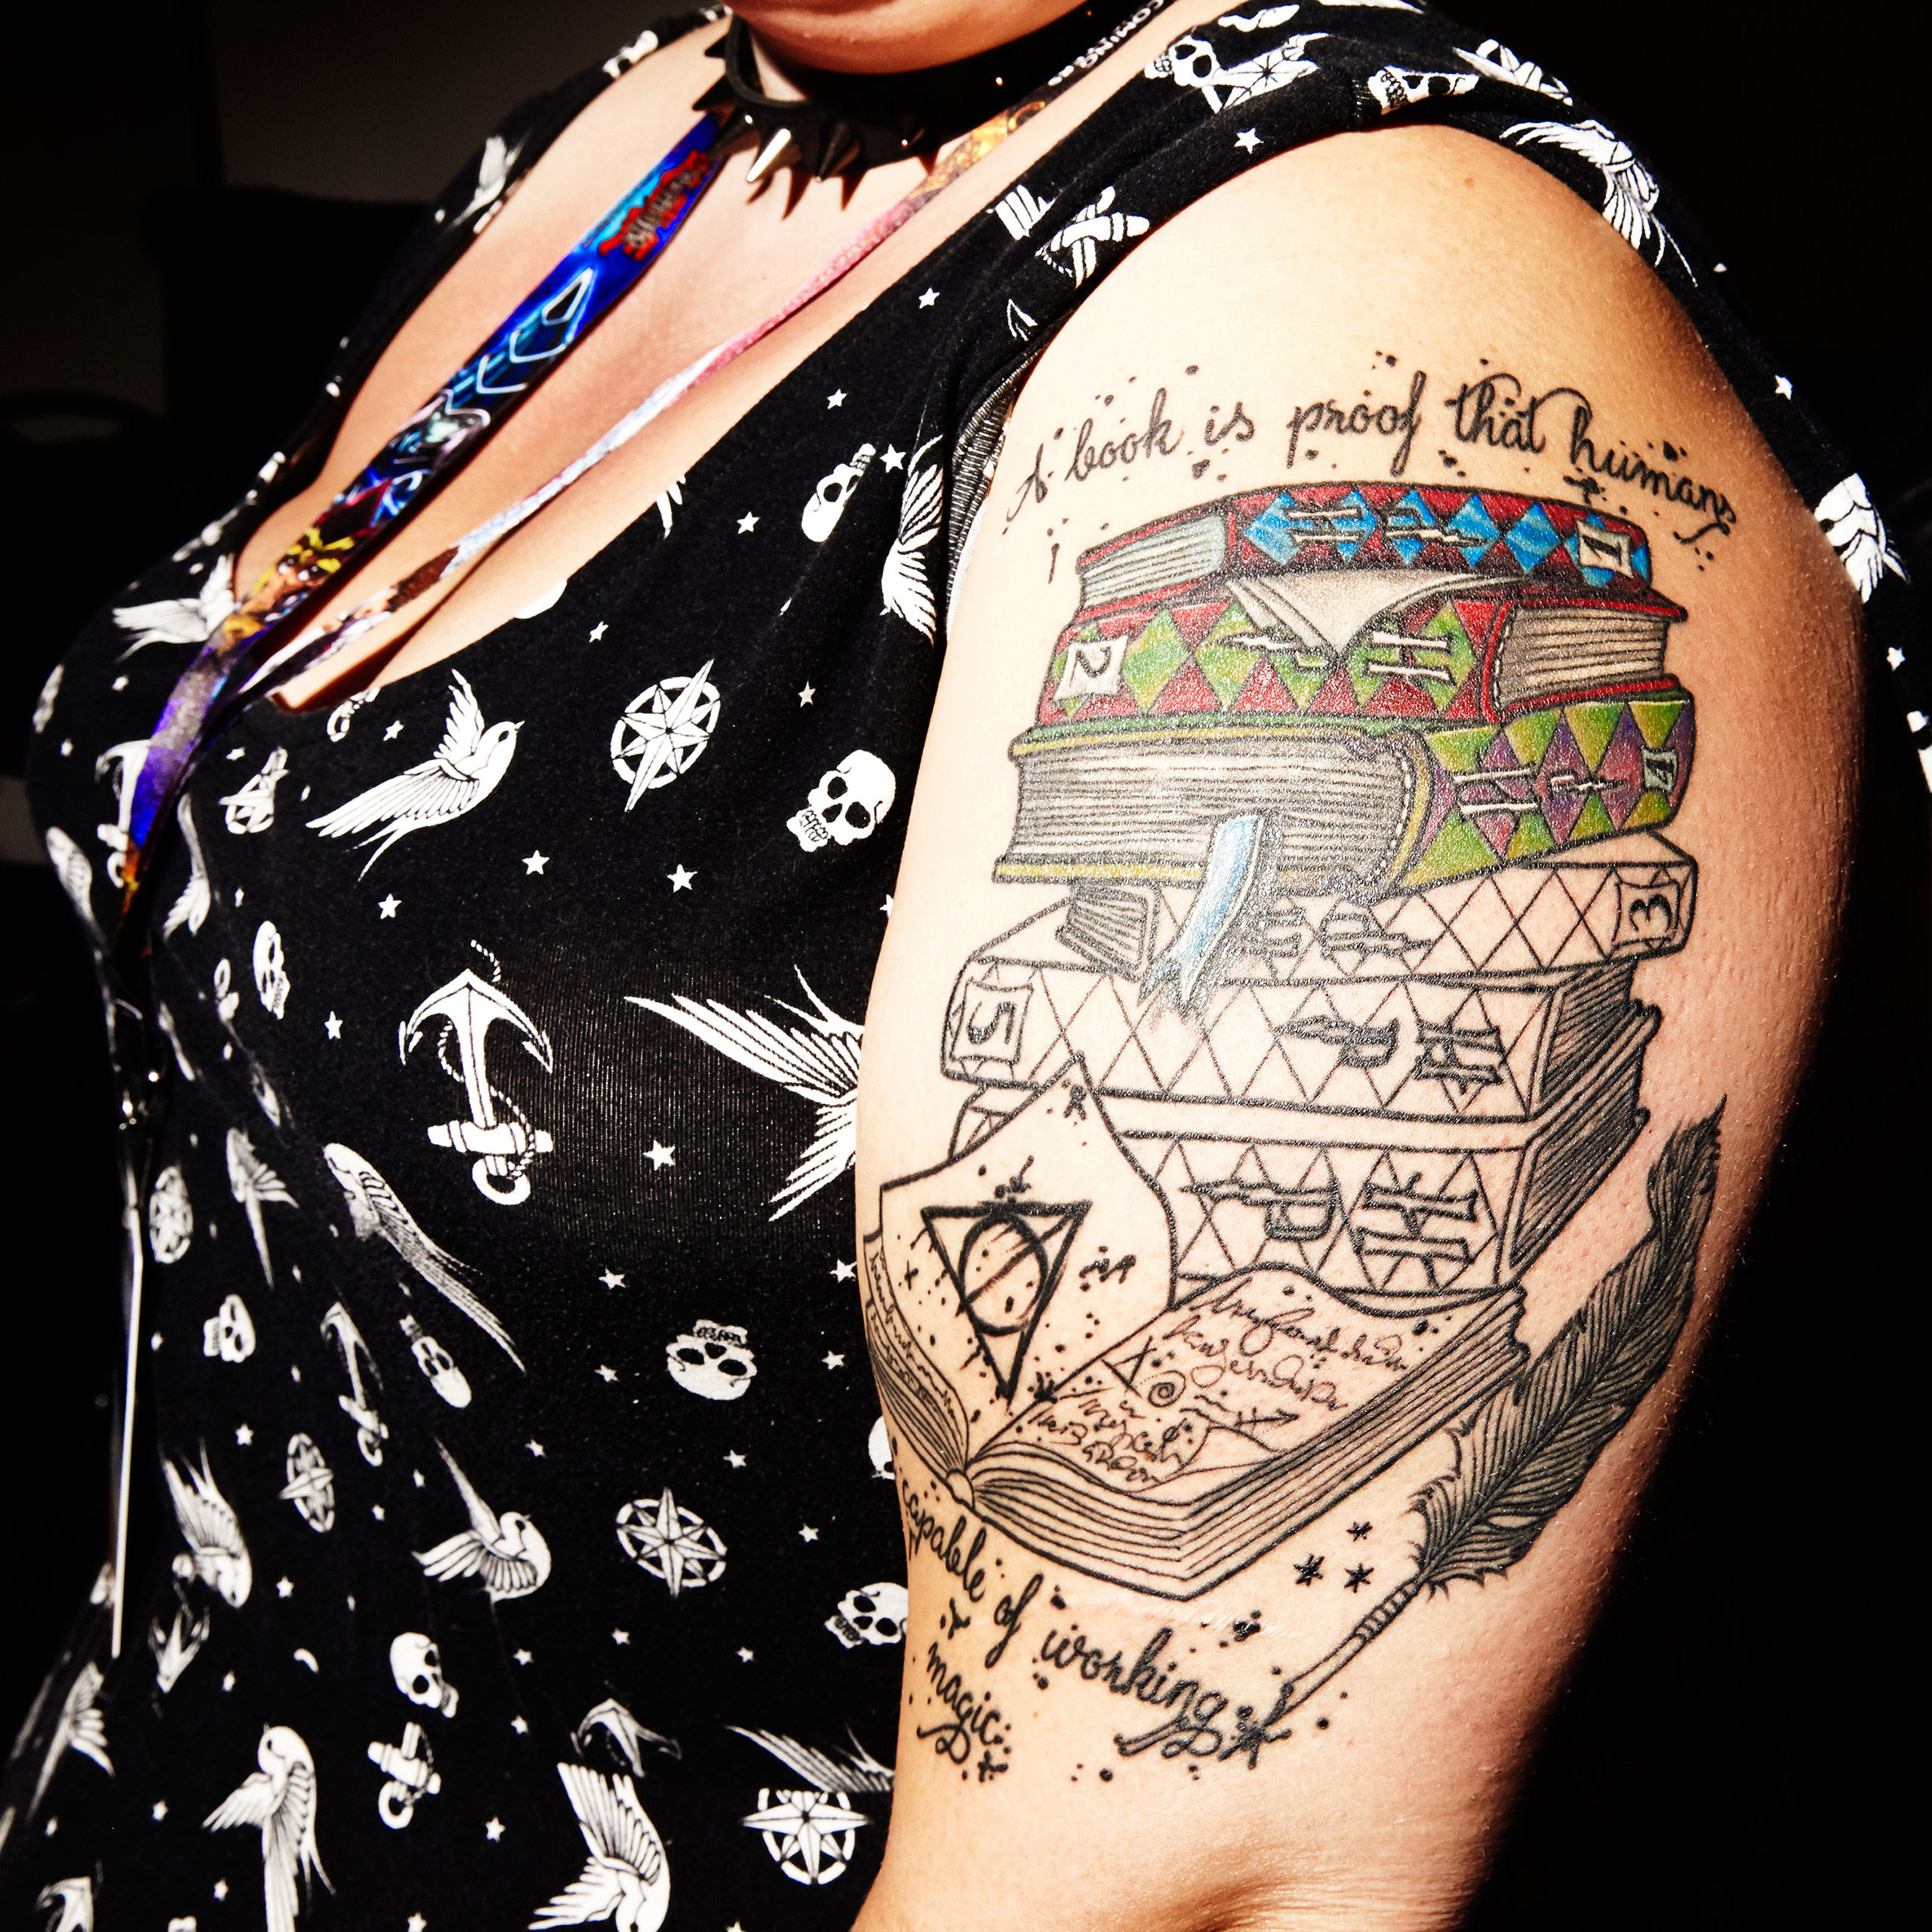 A member shows off her Harry Potter half sleeve at New York comic con.